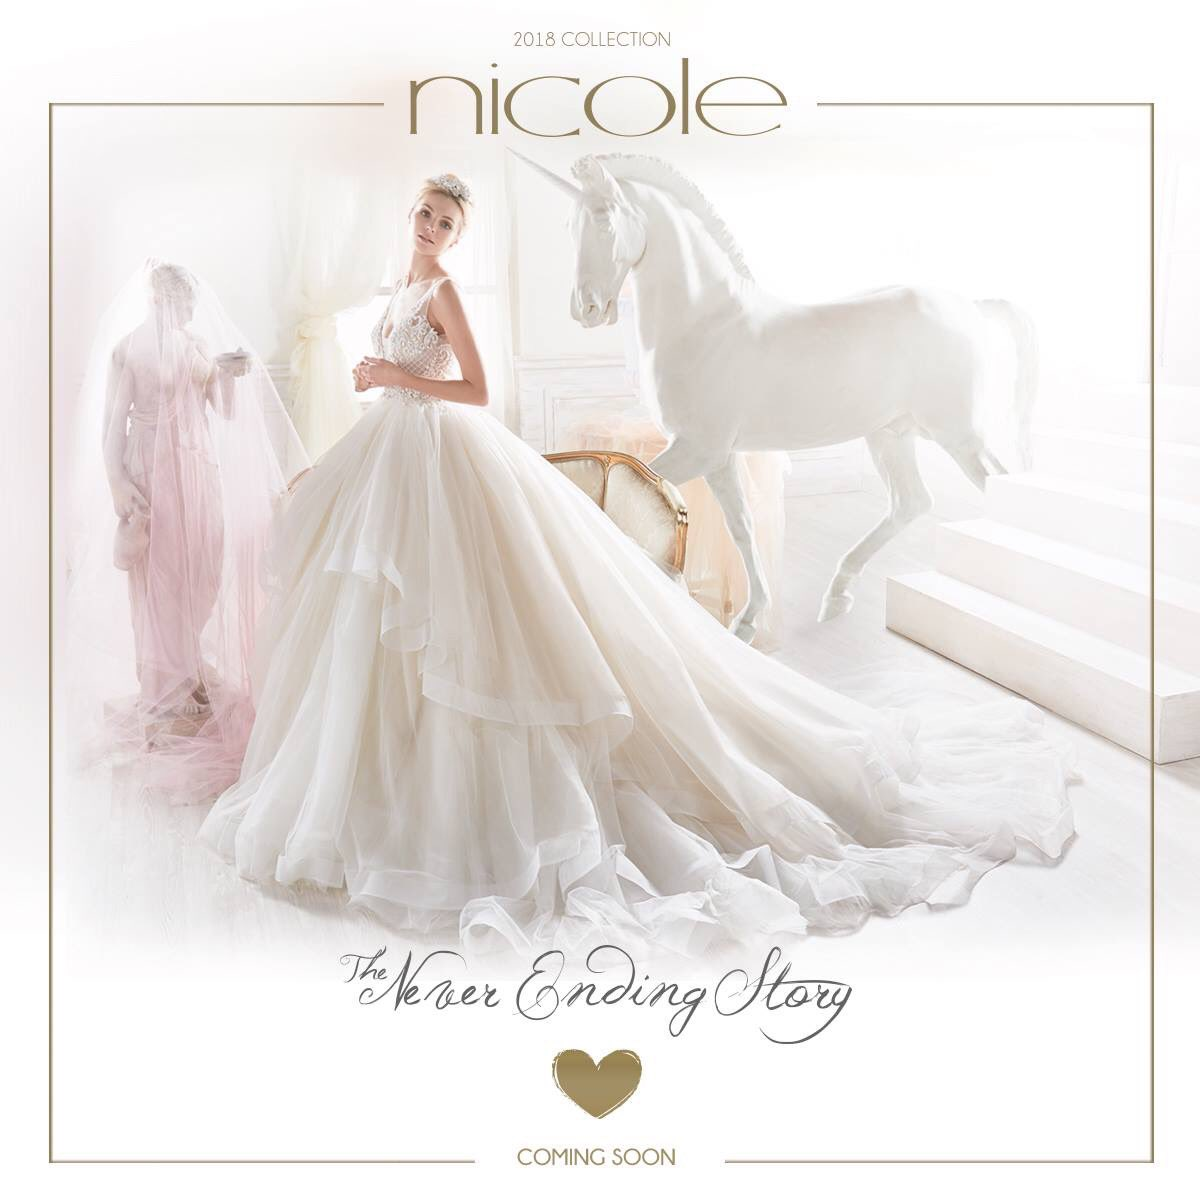 Cecile Brautmoden On Twitter Nicole Spose 2018 Coming Soon